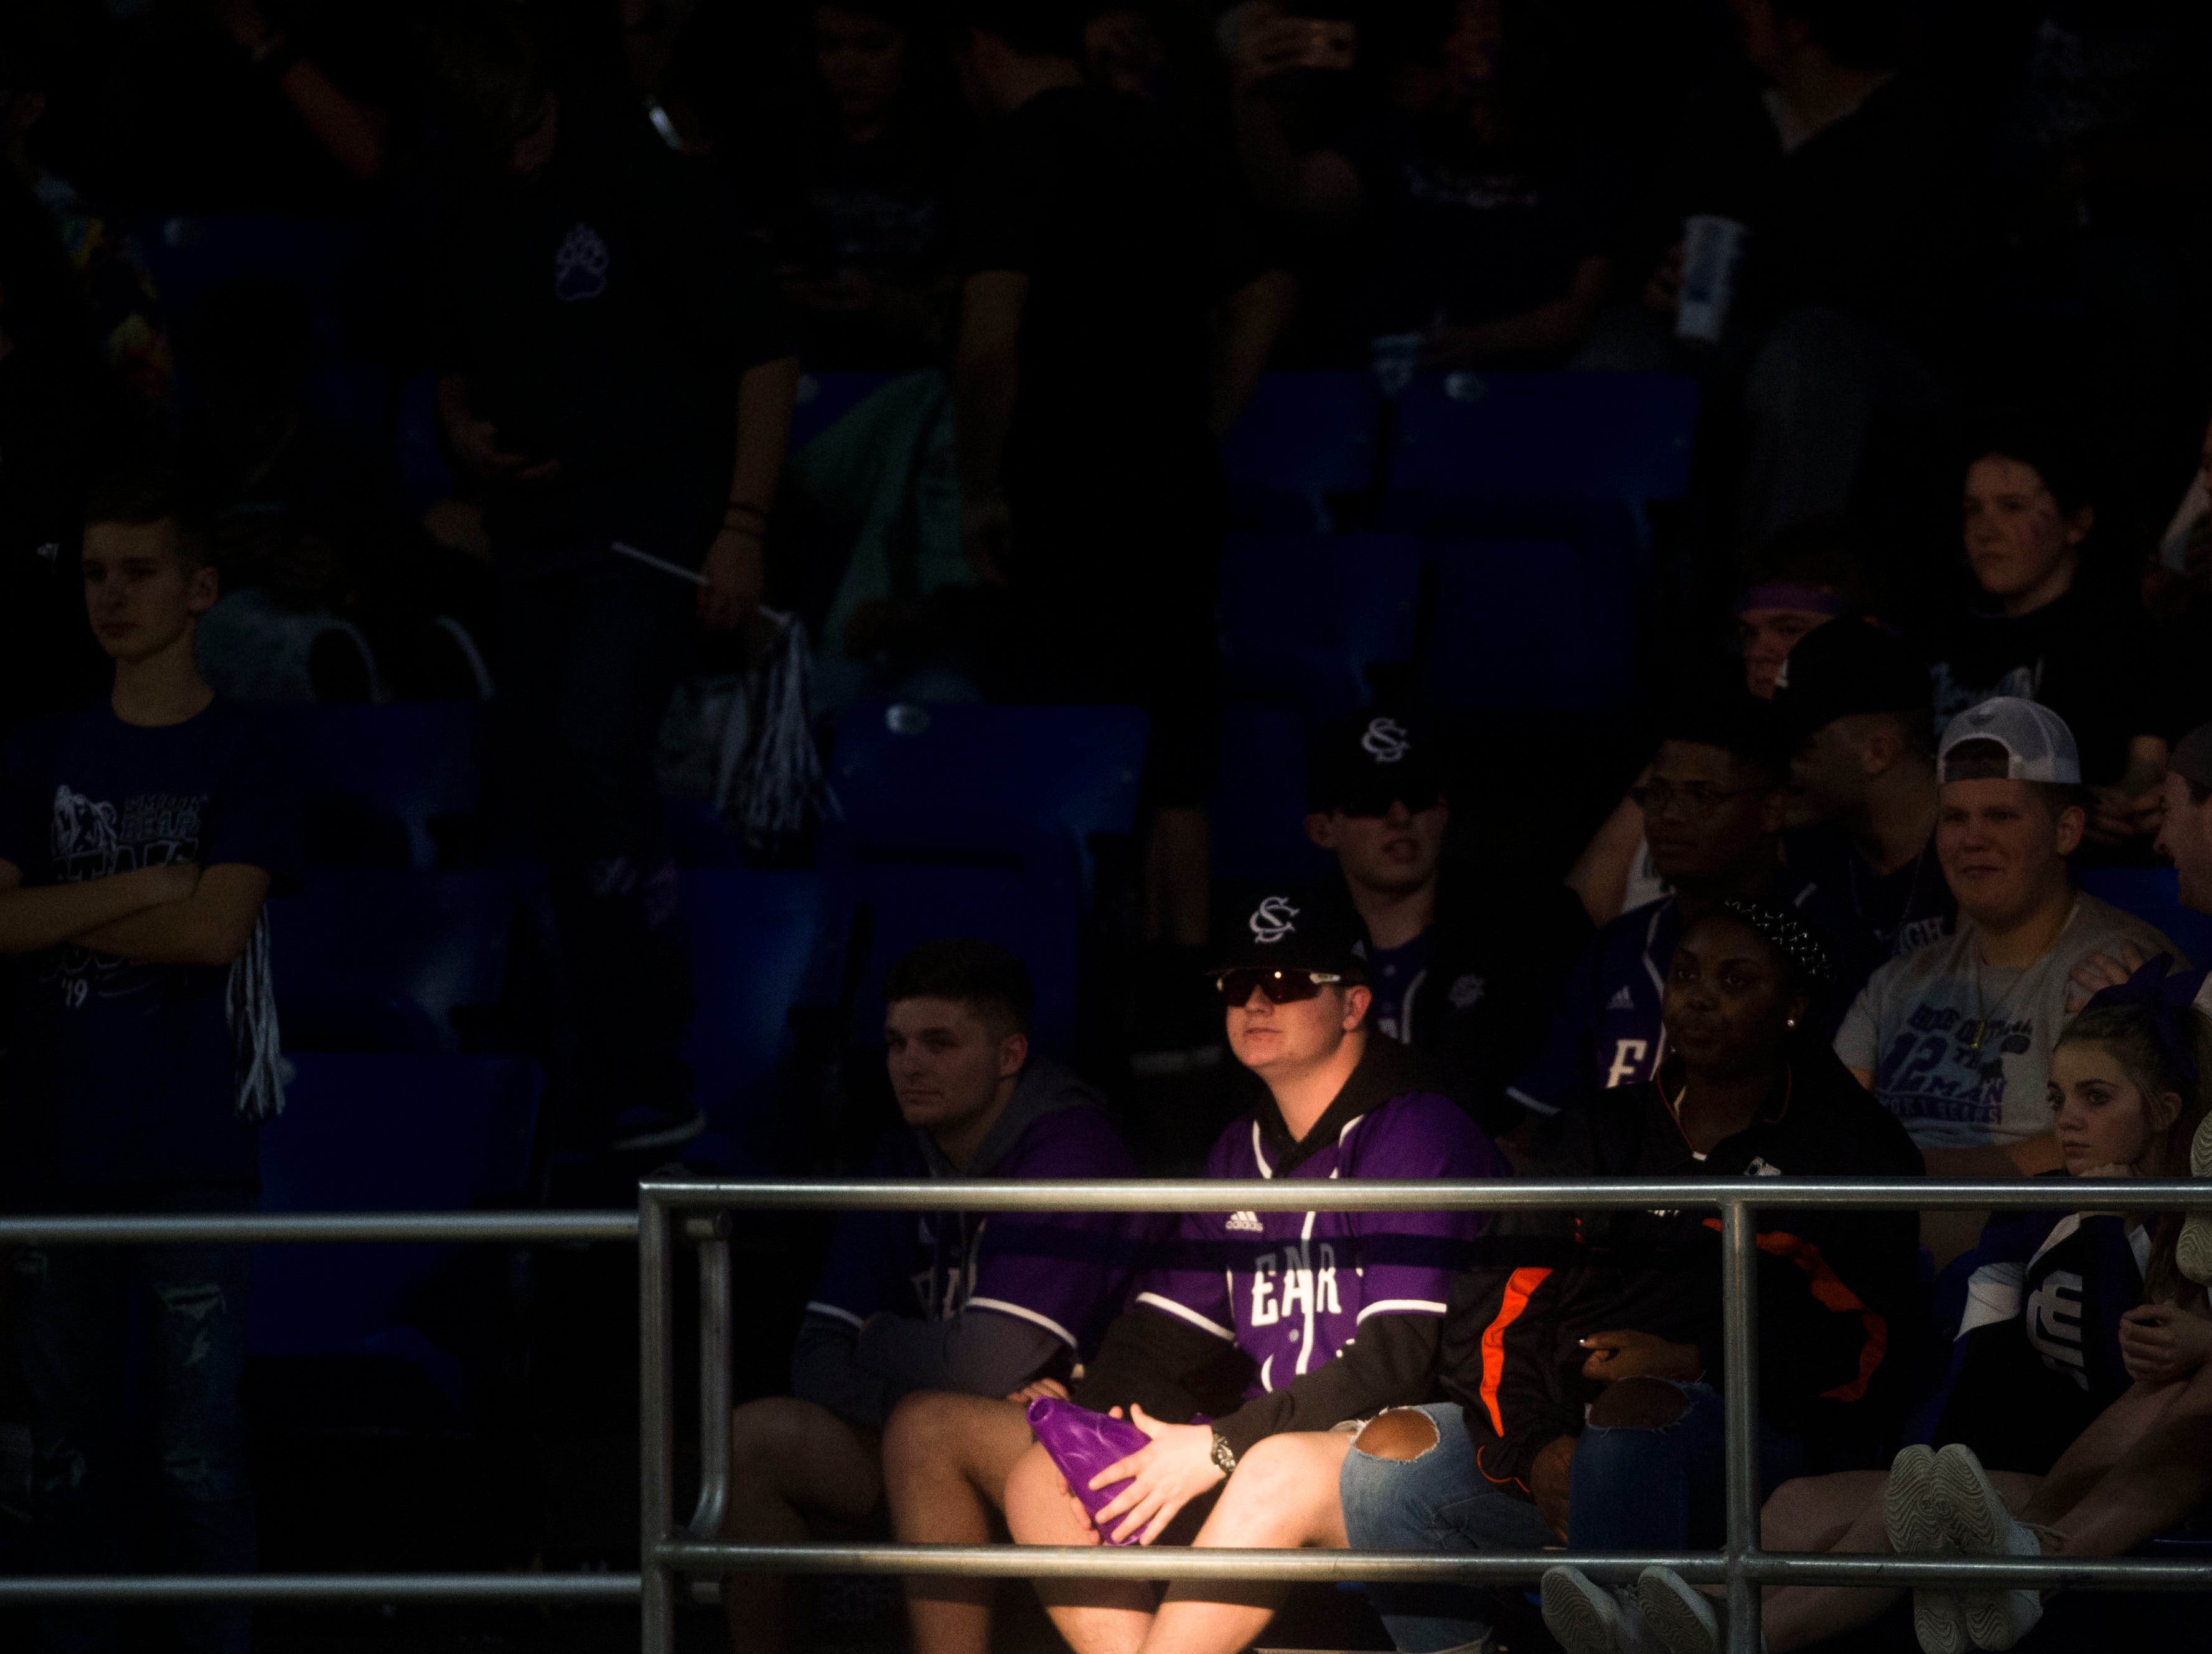 A Sevier County fan is hit my sunlight during a TSSAA AAA state quarterfinal game between Sevier County and Whitehaven at the Murphy Center in Murfreesboro, Wednesday, March 13, 2019.